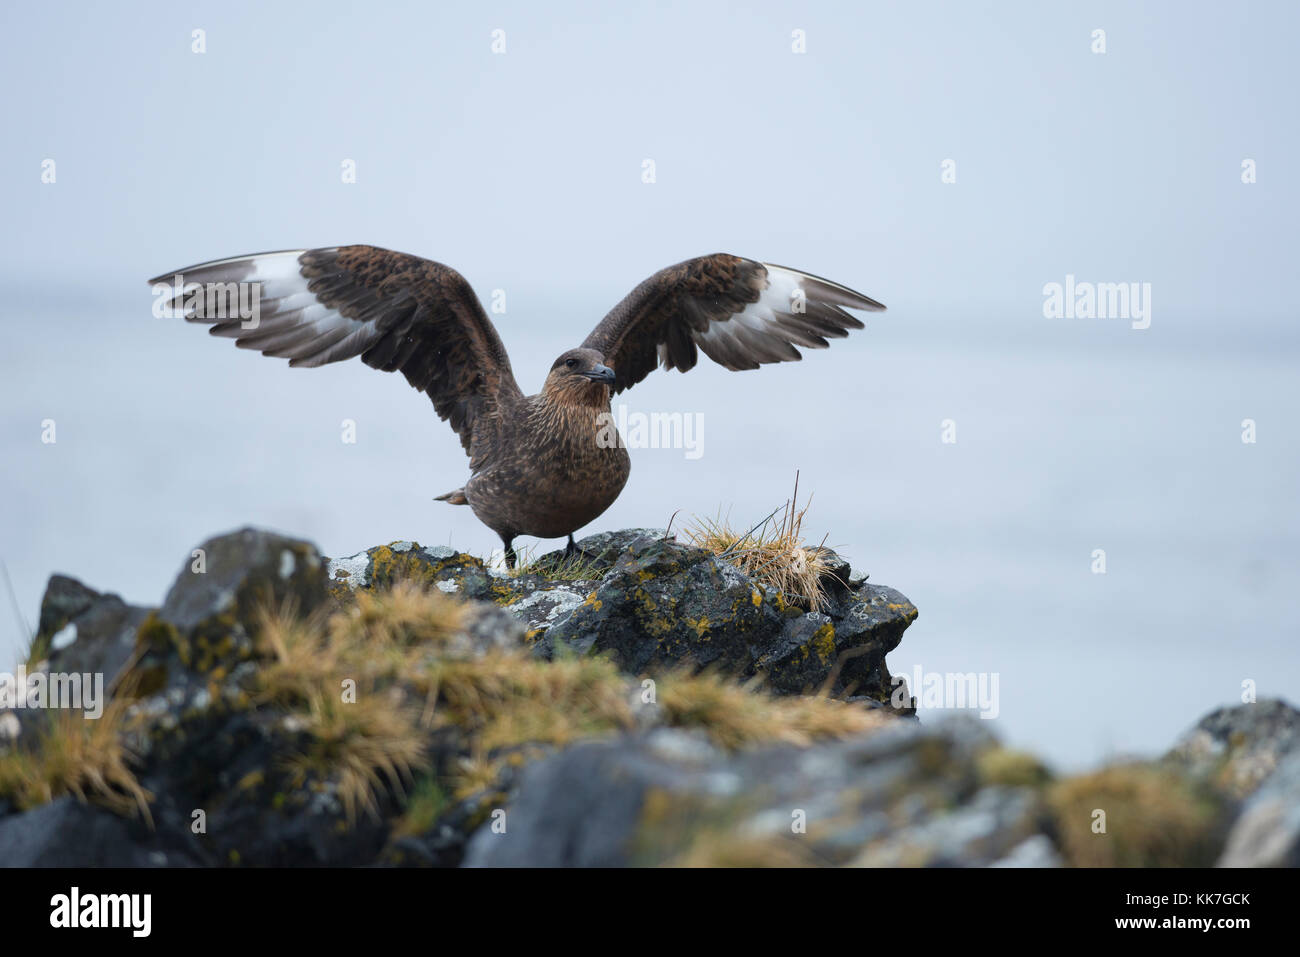 A Chilean Skua (Stercorarius chilensis) from south Chile - Stock Image